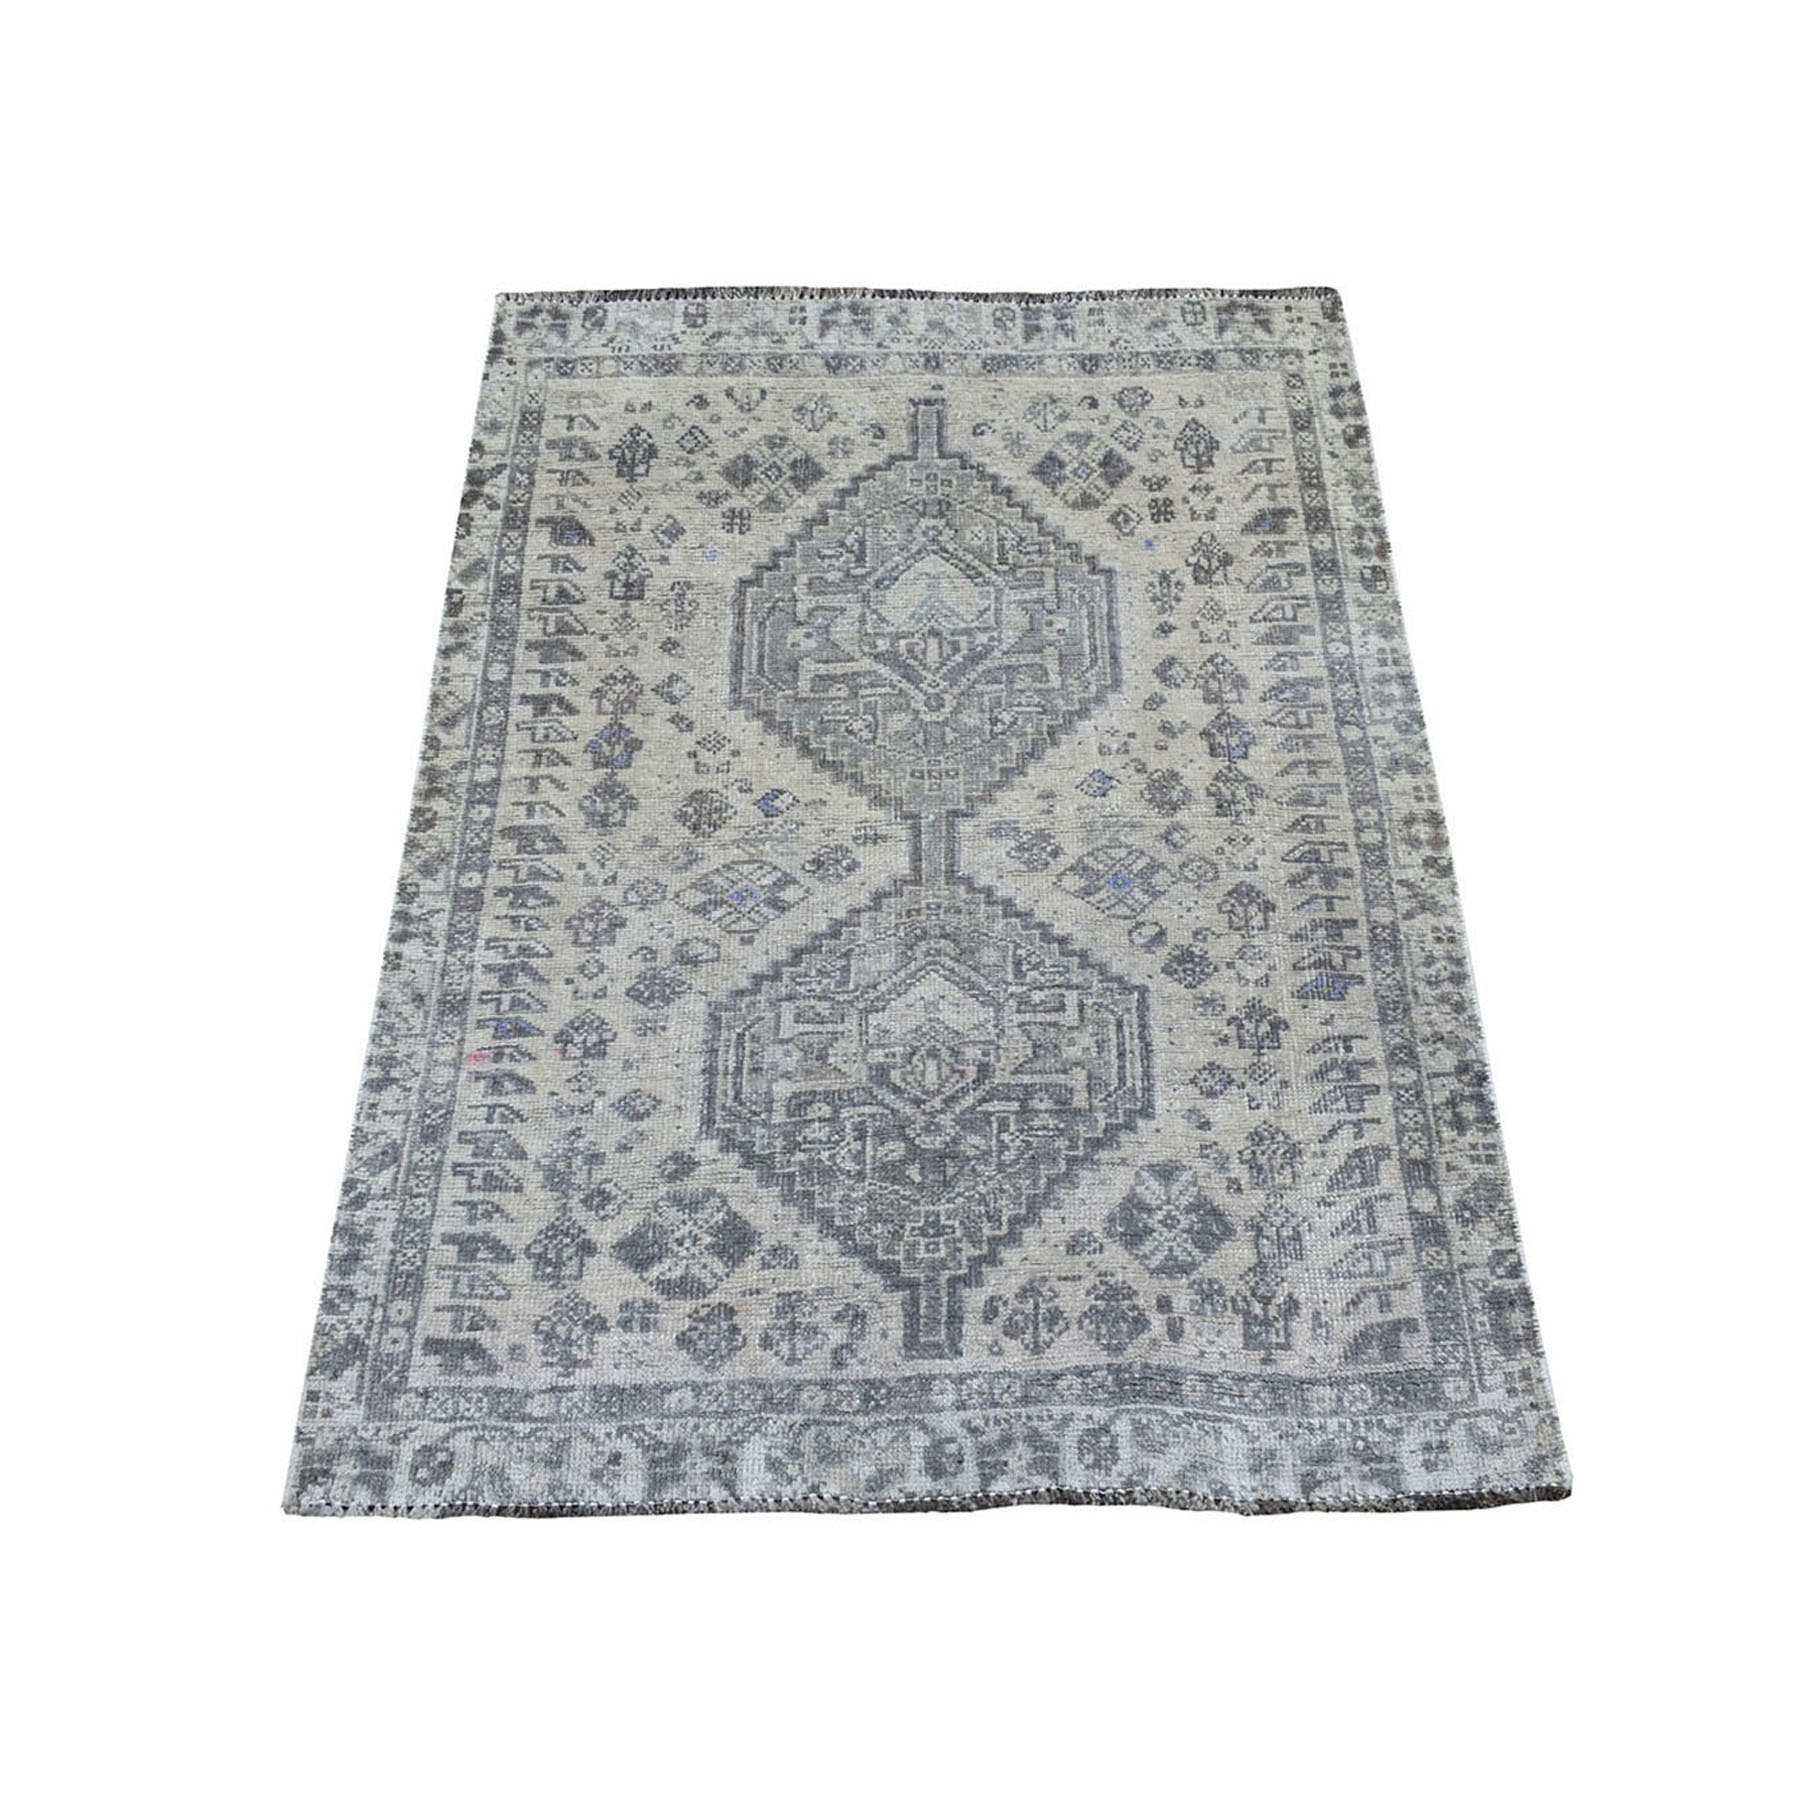 "3'X3'10"" Vintage And Worn Down Distressed Colors Persian Shiraz Hand Knotted Bohemian Rug moaed08d"